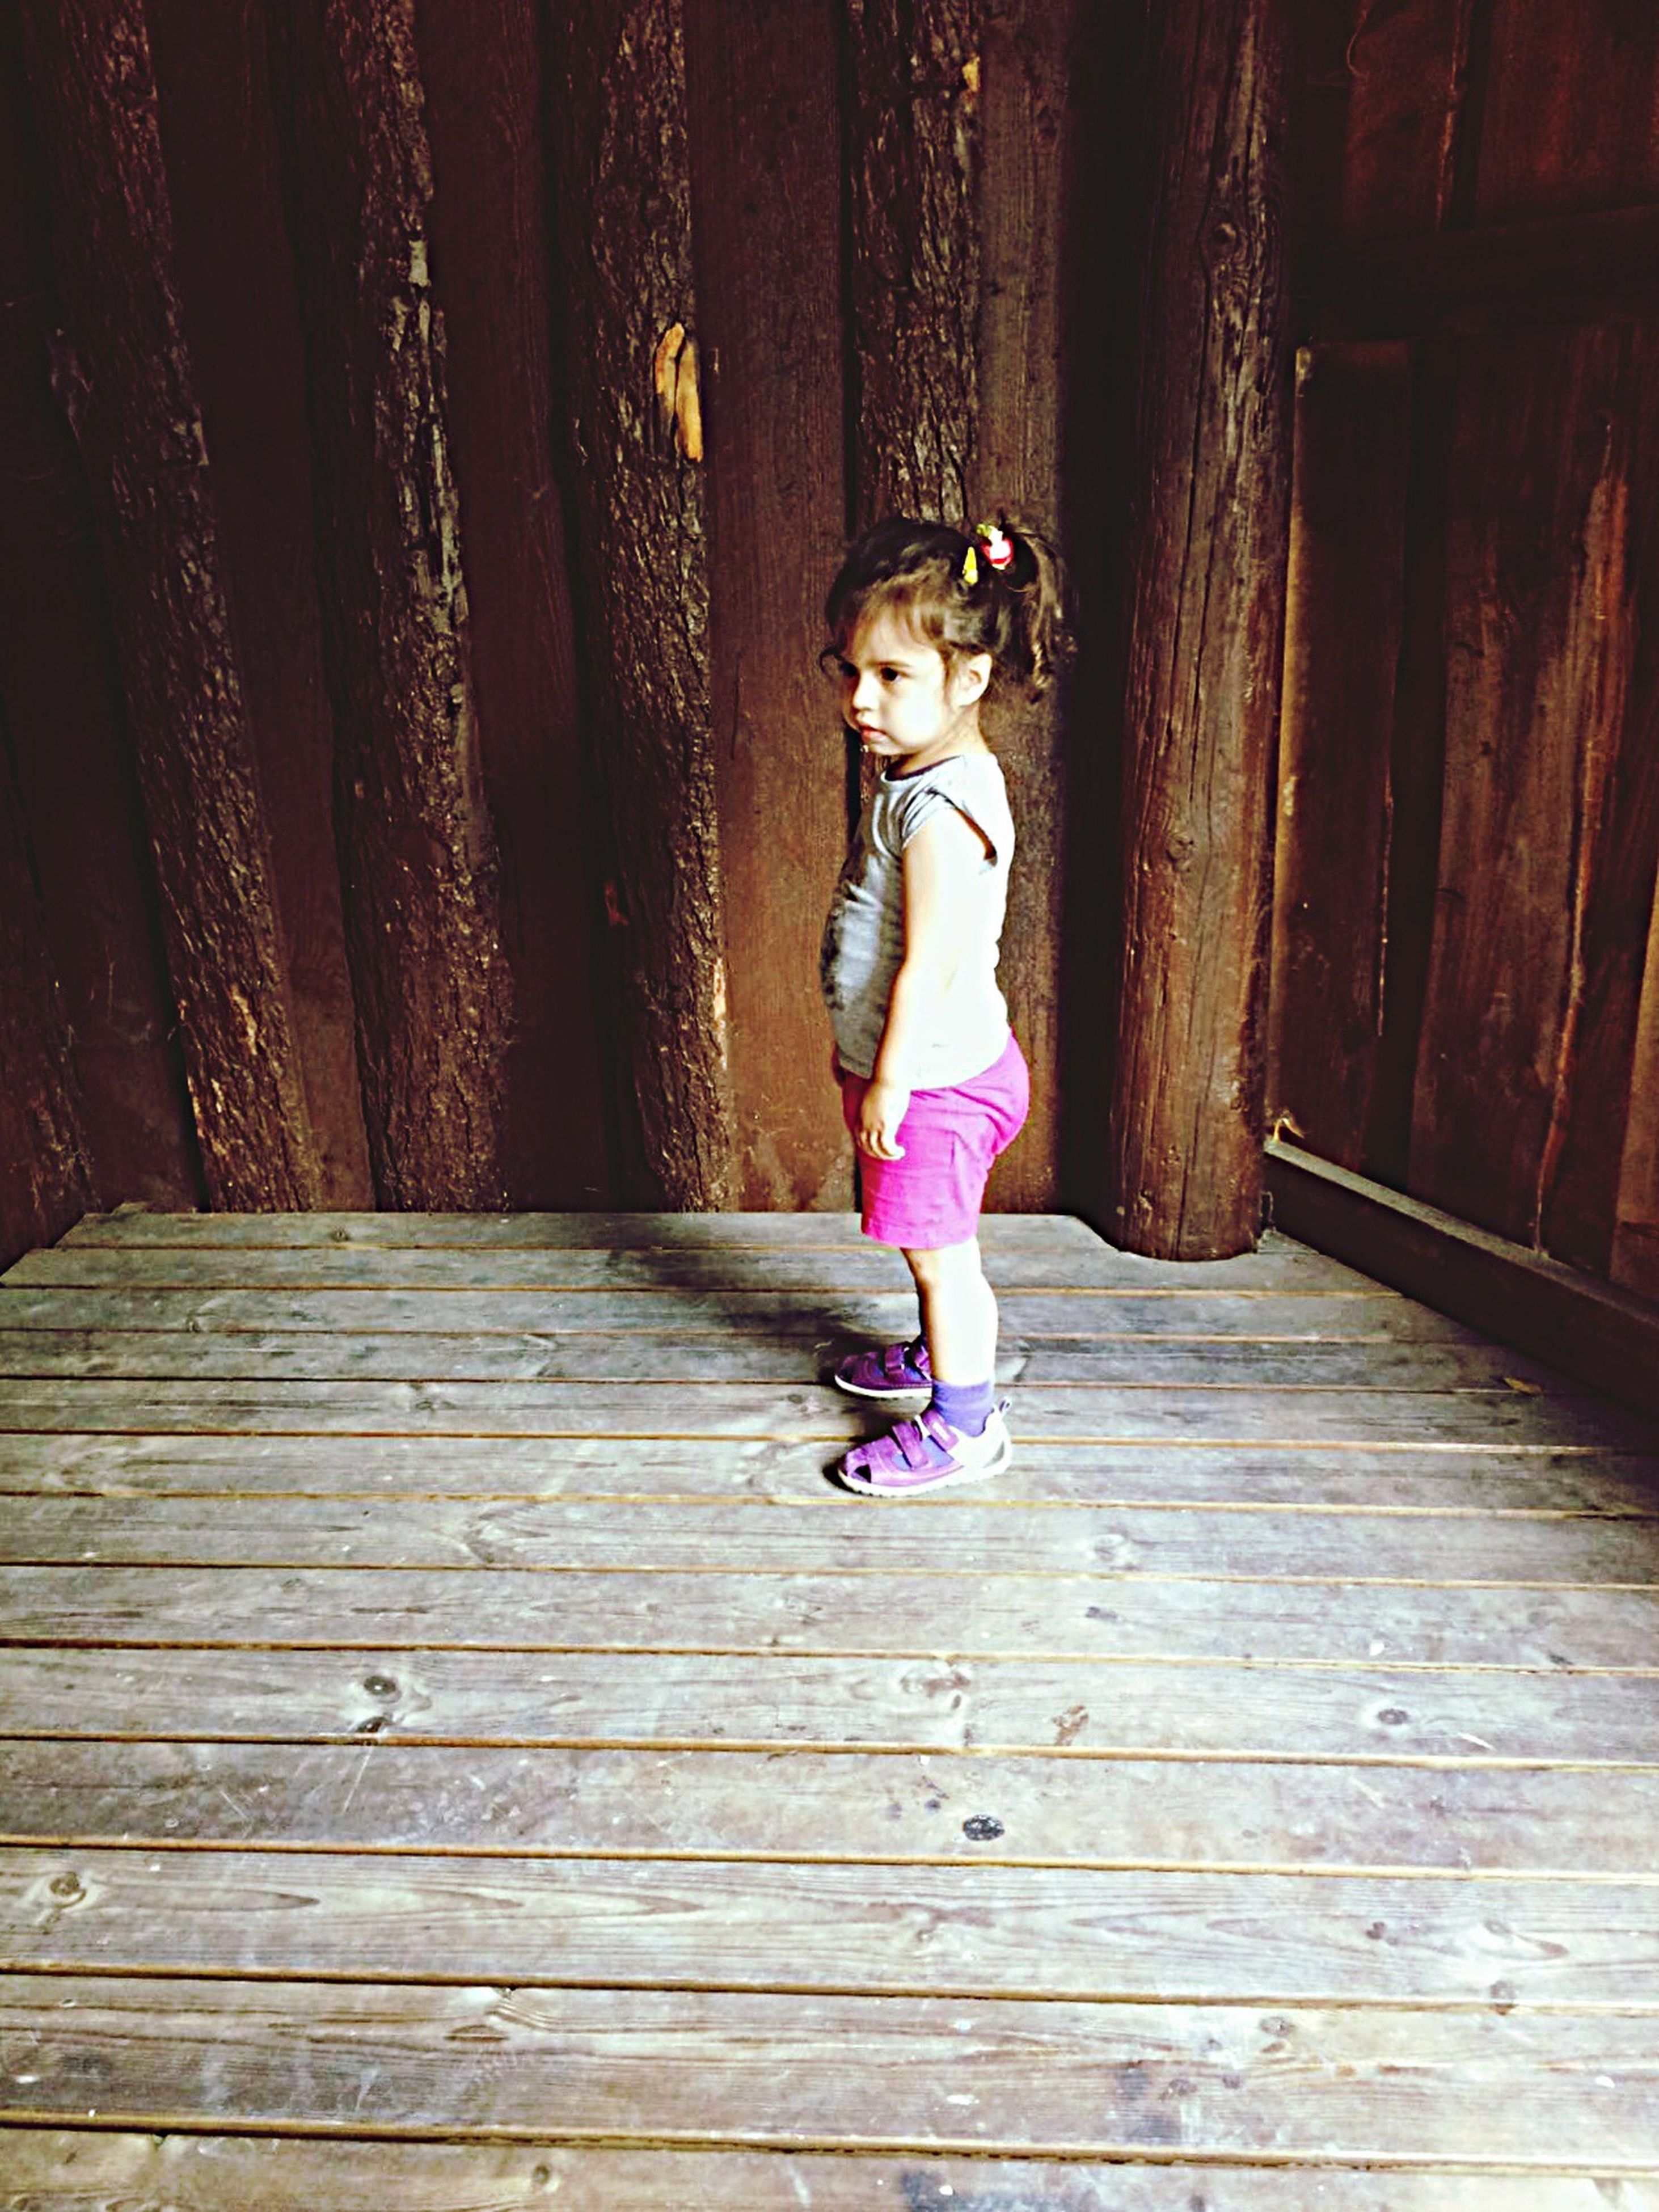 wood - material, full length, lifestyles, casual clothing, leisure activity, wooden, person, outdoors, young adult, pink color, boardwalk